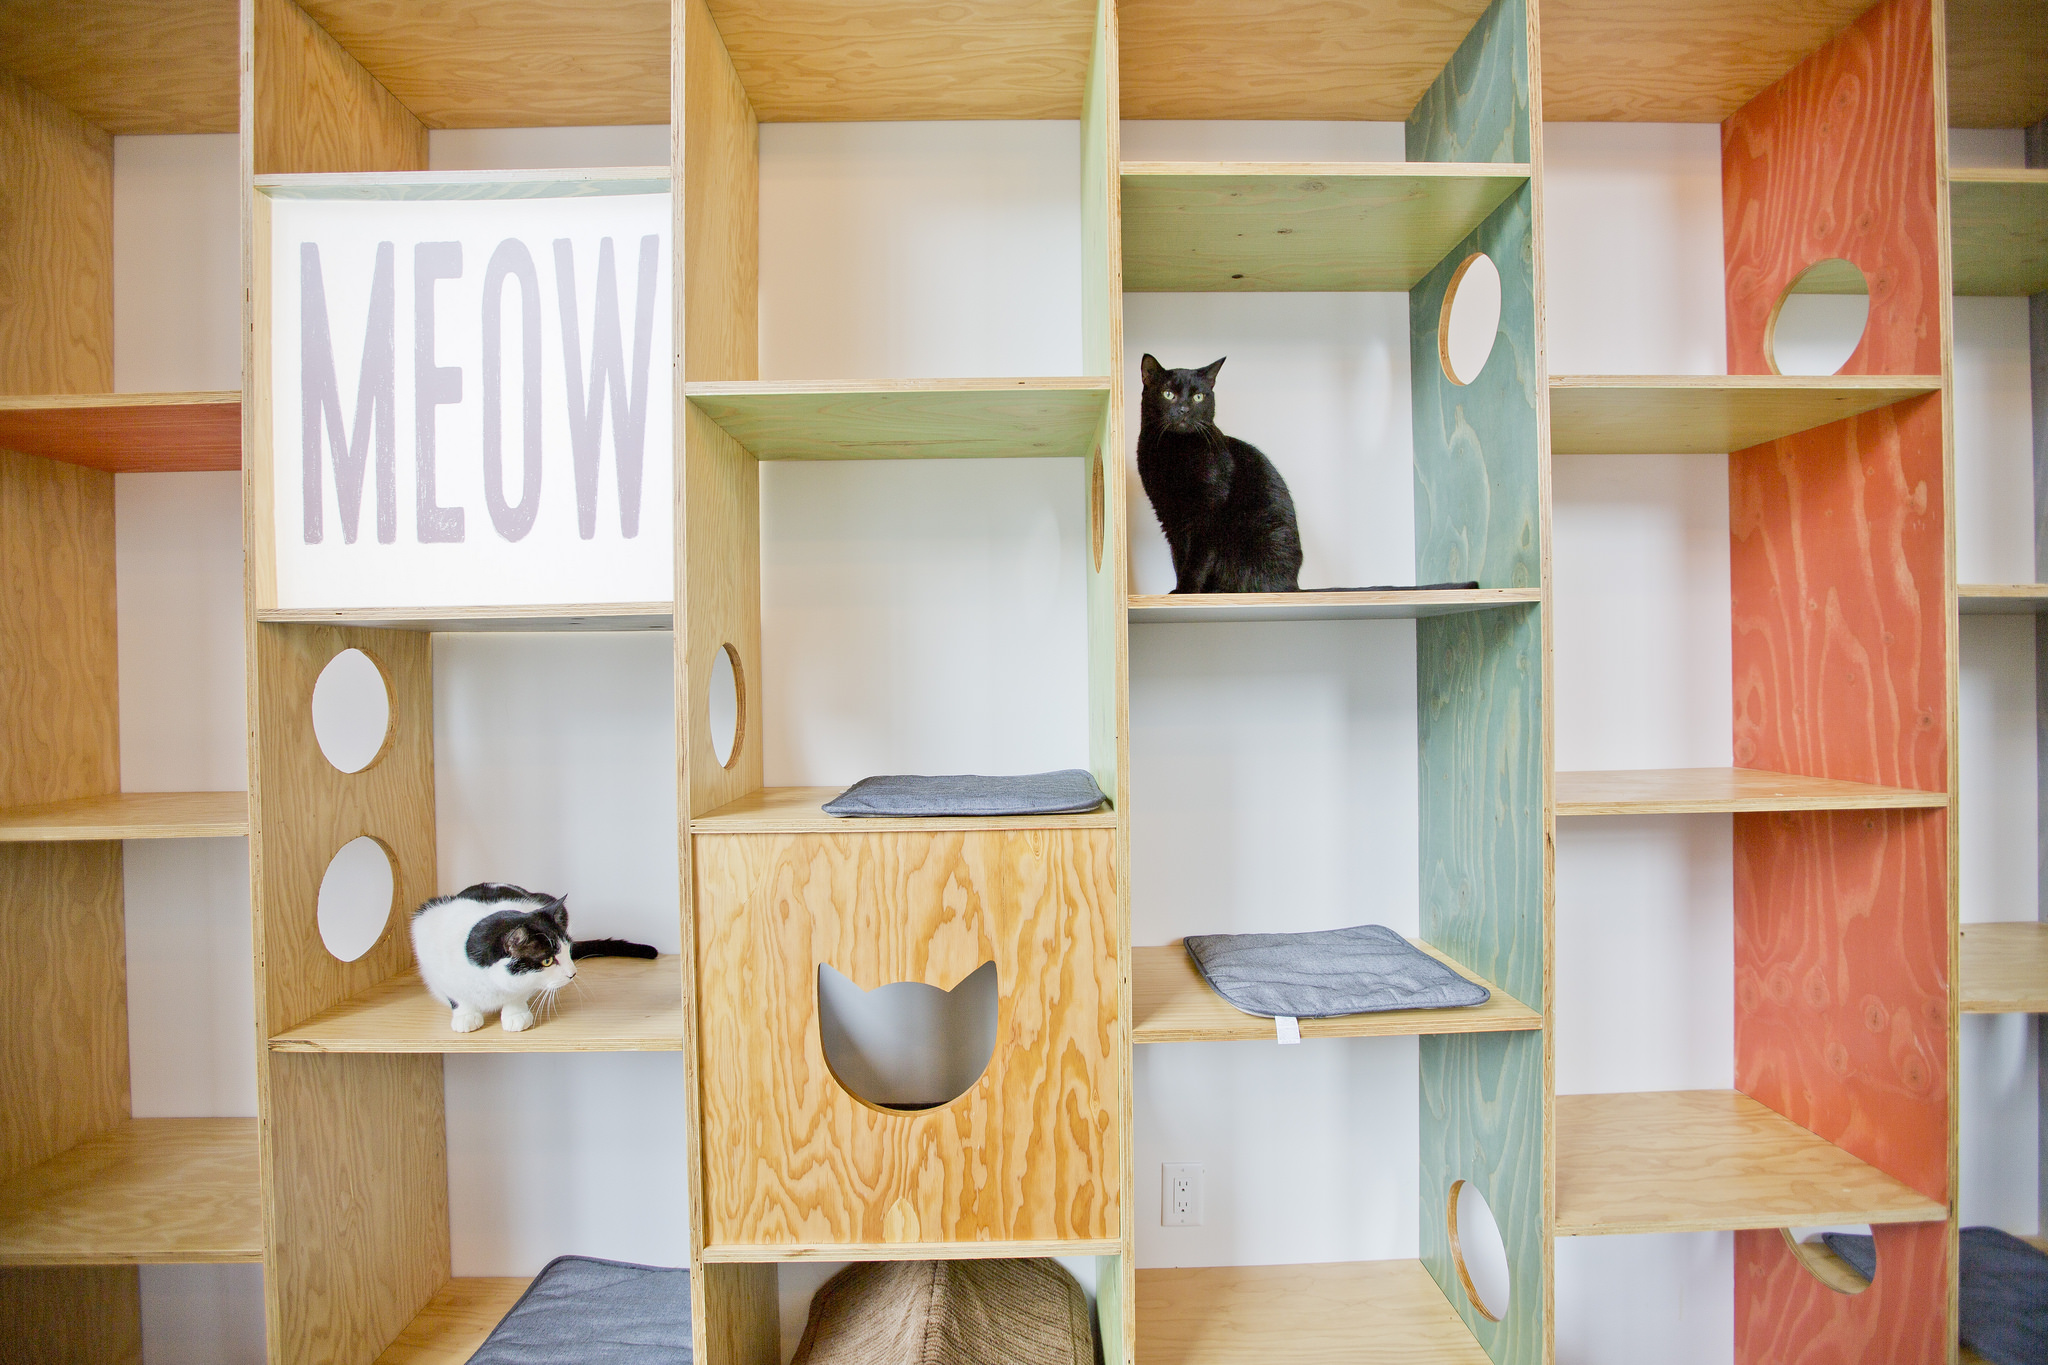 Cats have plenty of nooks and crannies to hide in at Vancouver's Catfe. Photo Credit: GoToVan via Flickr